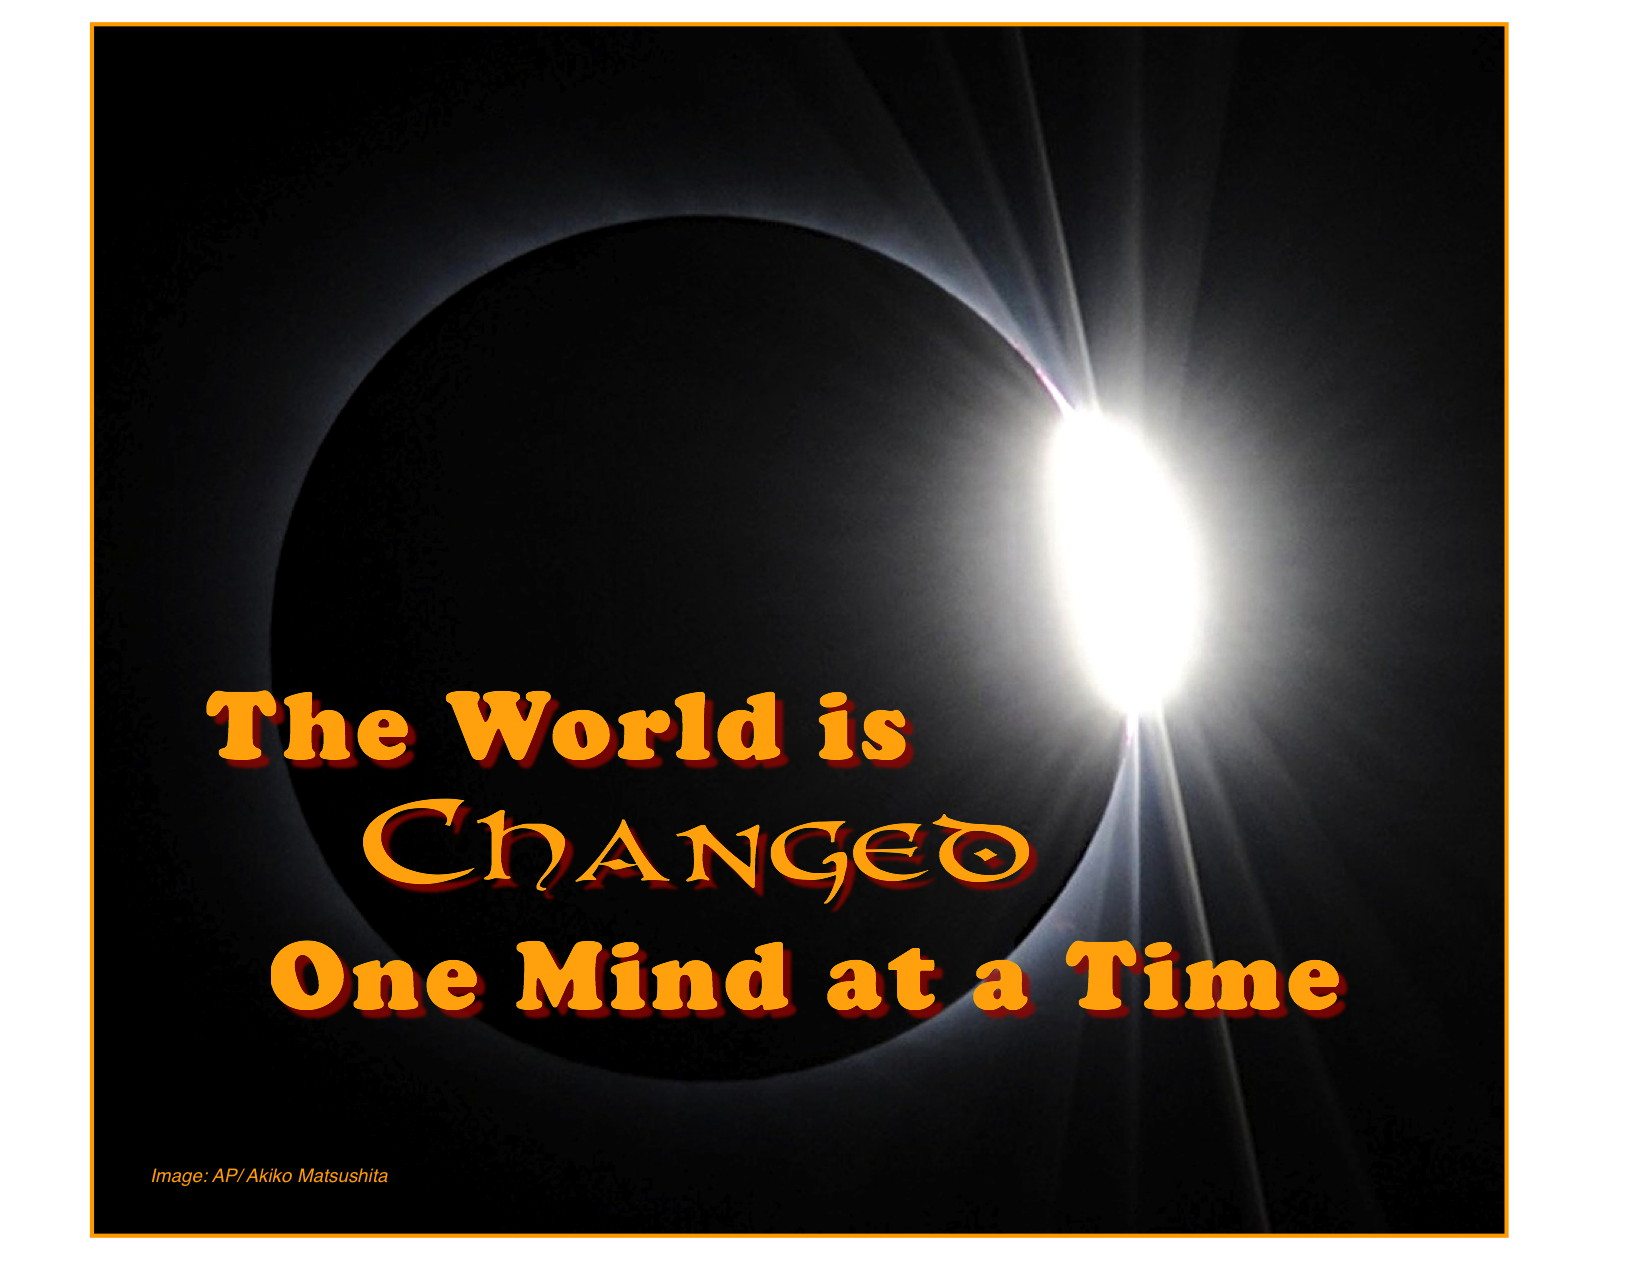 the_world_is_changed_one_mind_at_a_time-copy